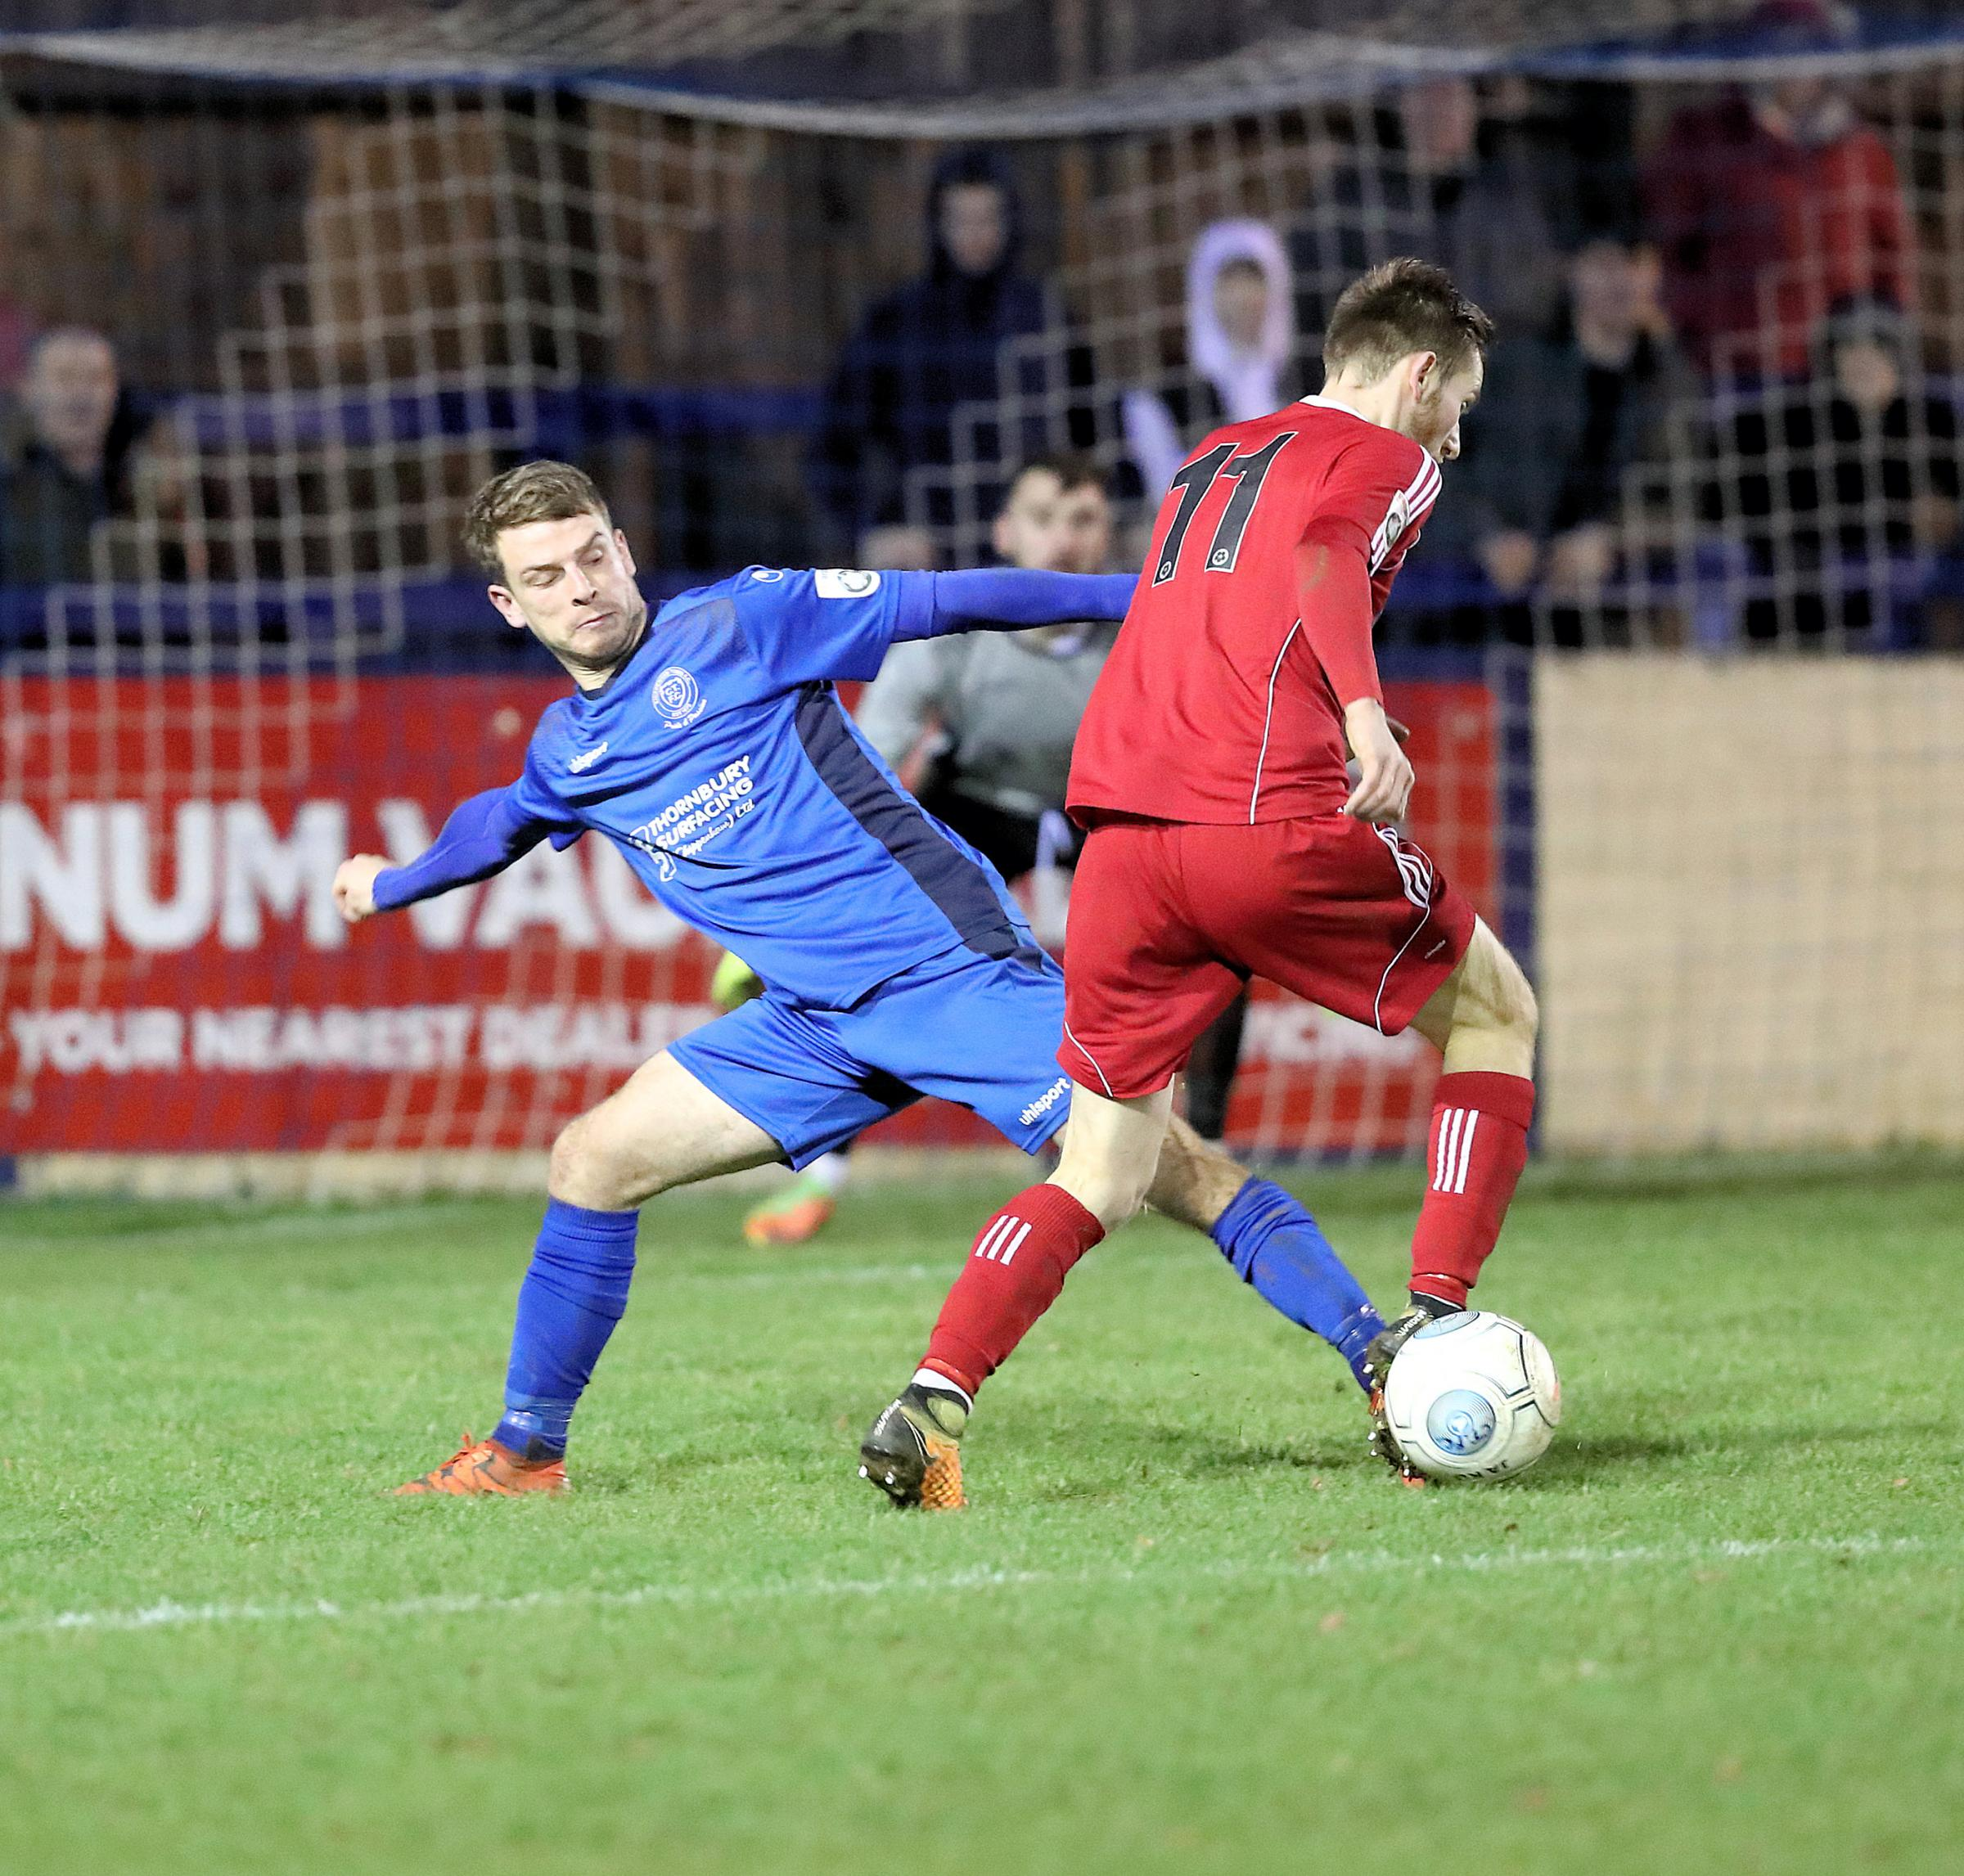 Chippenham Town's Alex Ferguson (blue) battles for the ball during the 2-1 defeat at home to Hungerford Town. PICTURE: RICHARD CHAPPELL